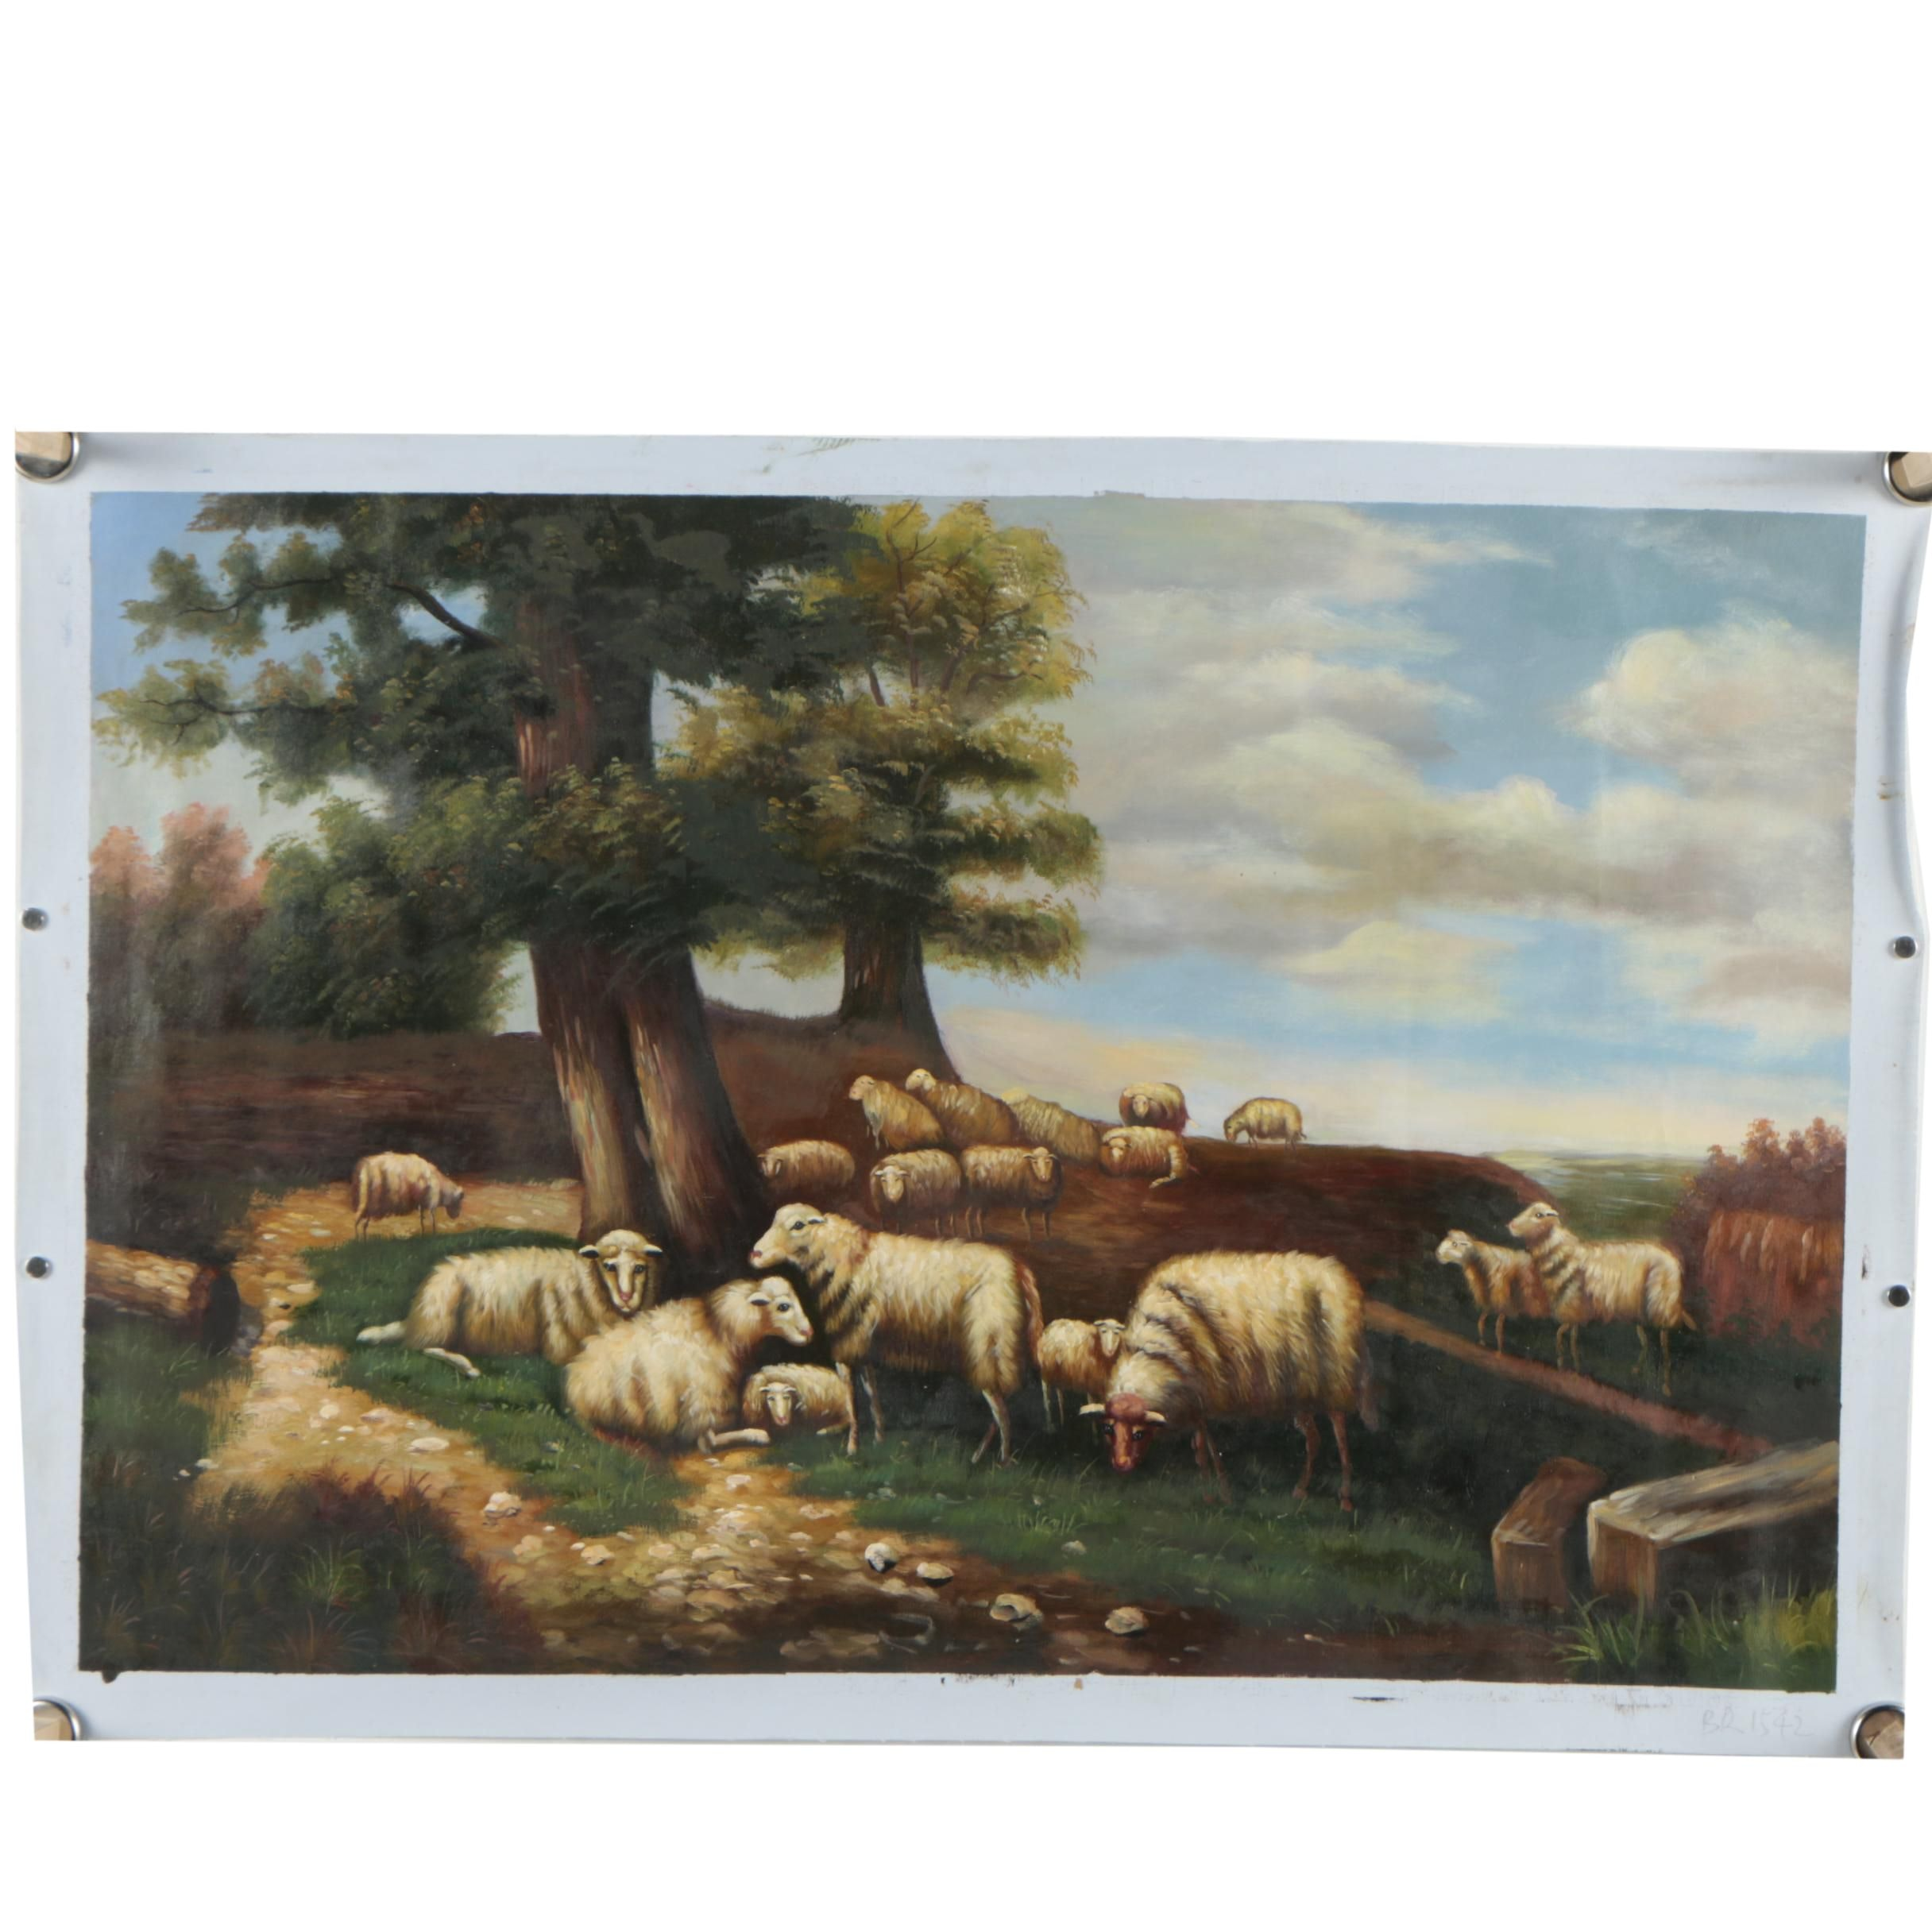 Oil on Canvas Painting of Pastoral Landscape with Sheep